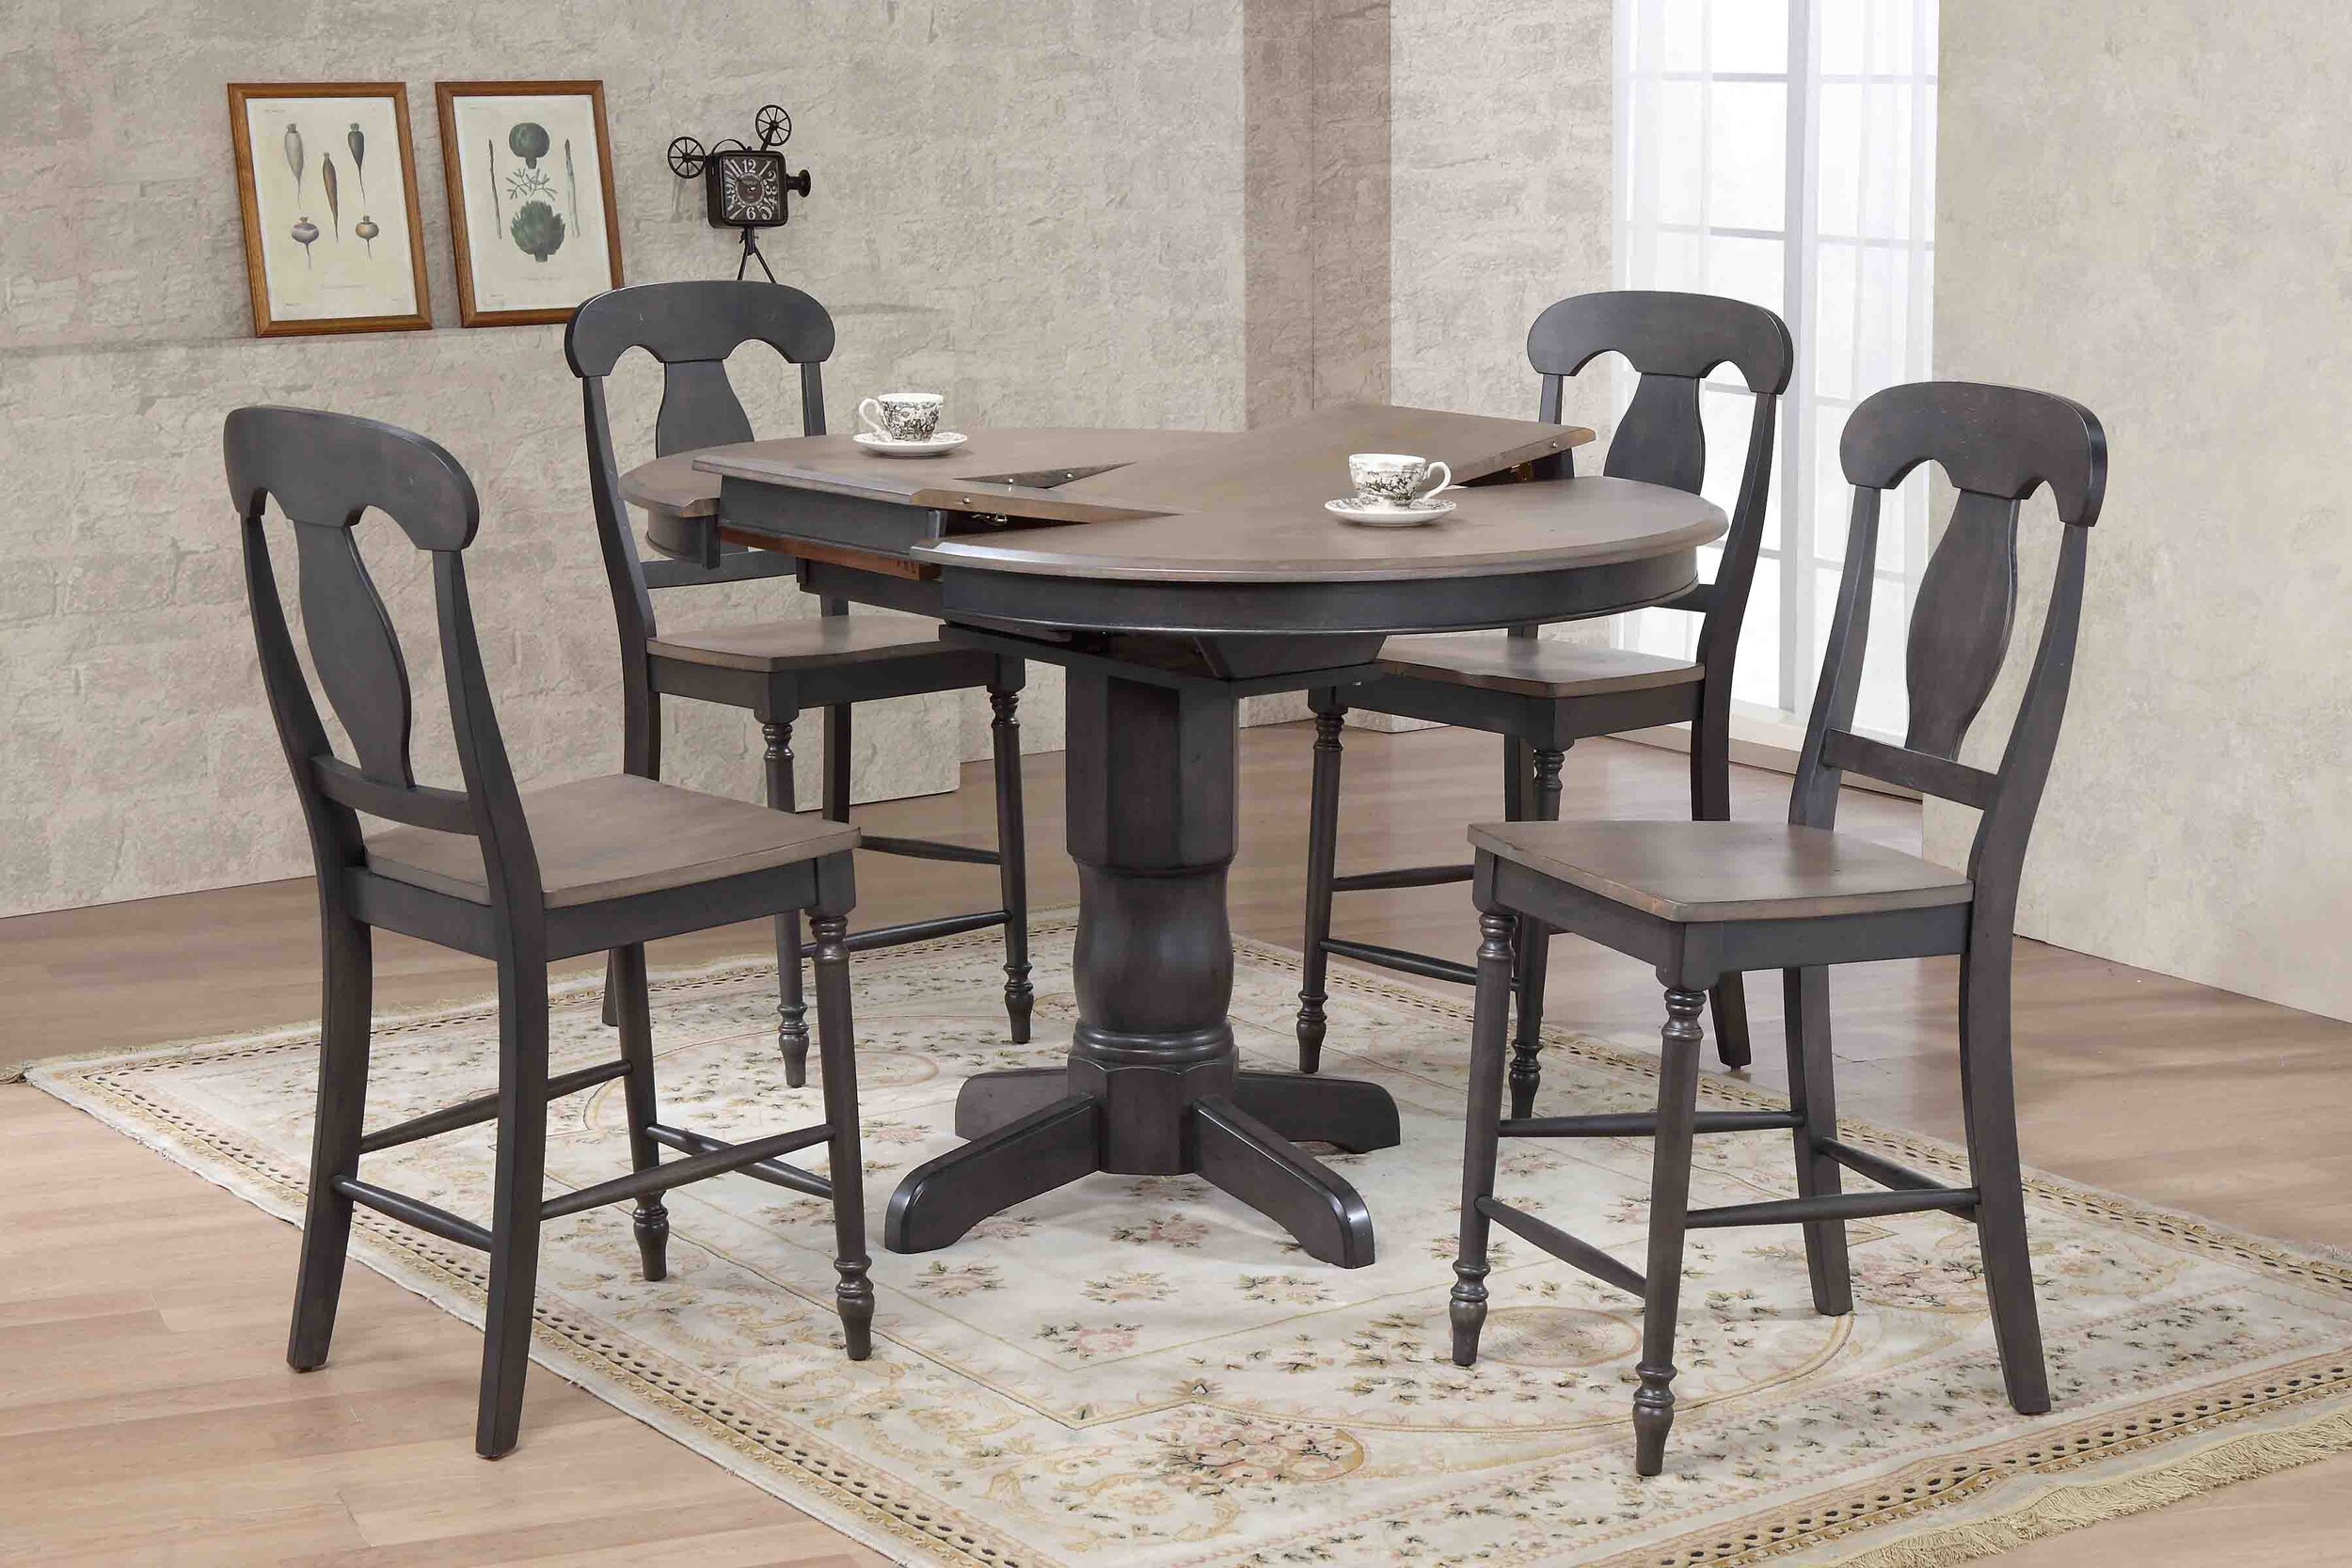 Antiqued Grey Stone Black Stone Napoleon Back Counter Height (5-Piece Dining Set)